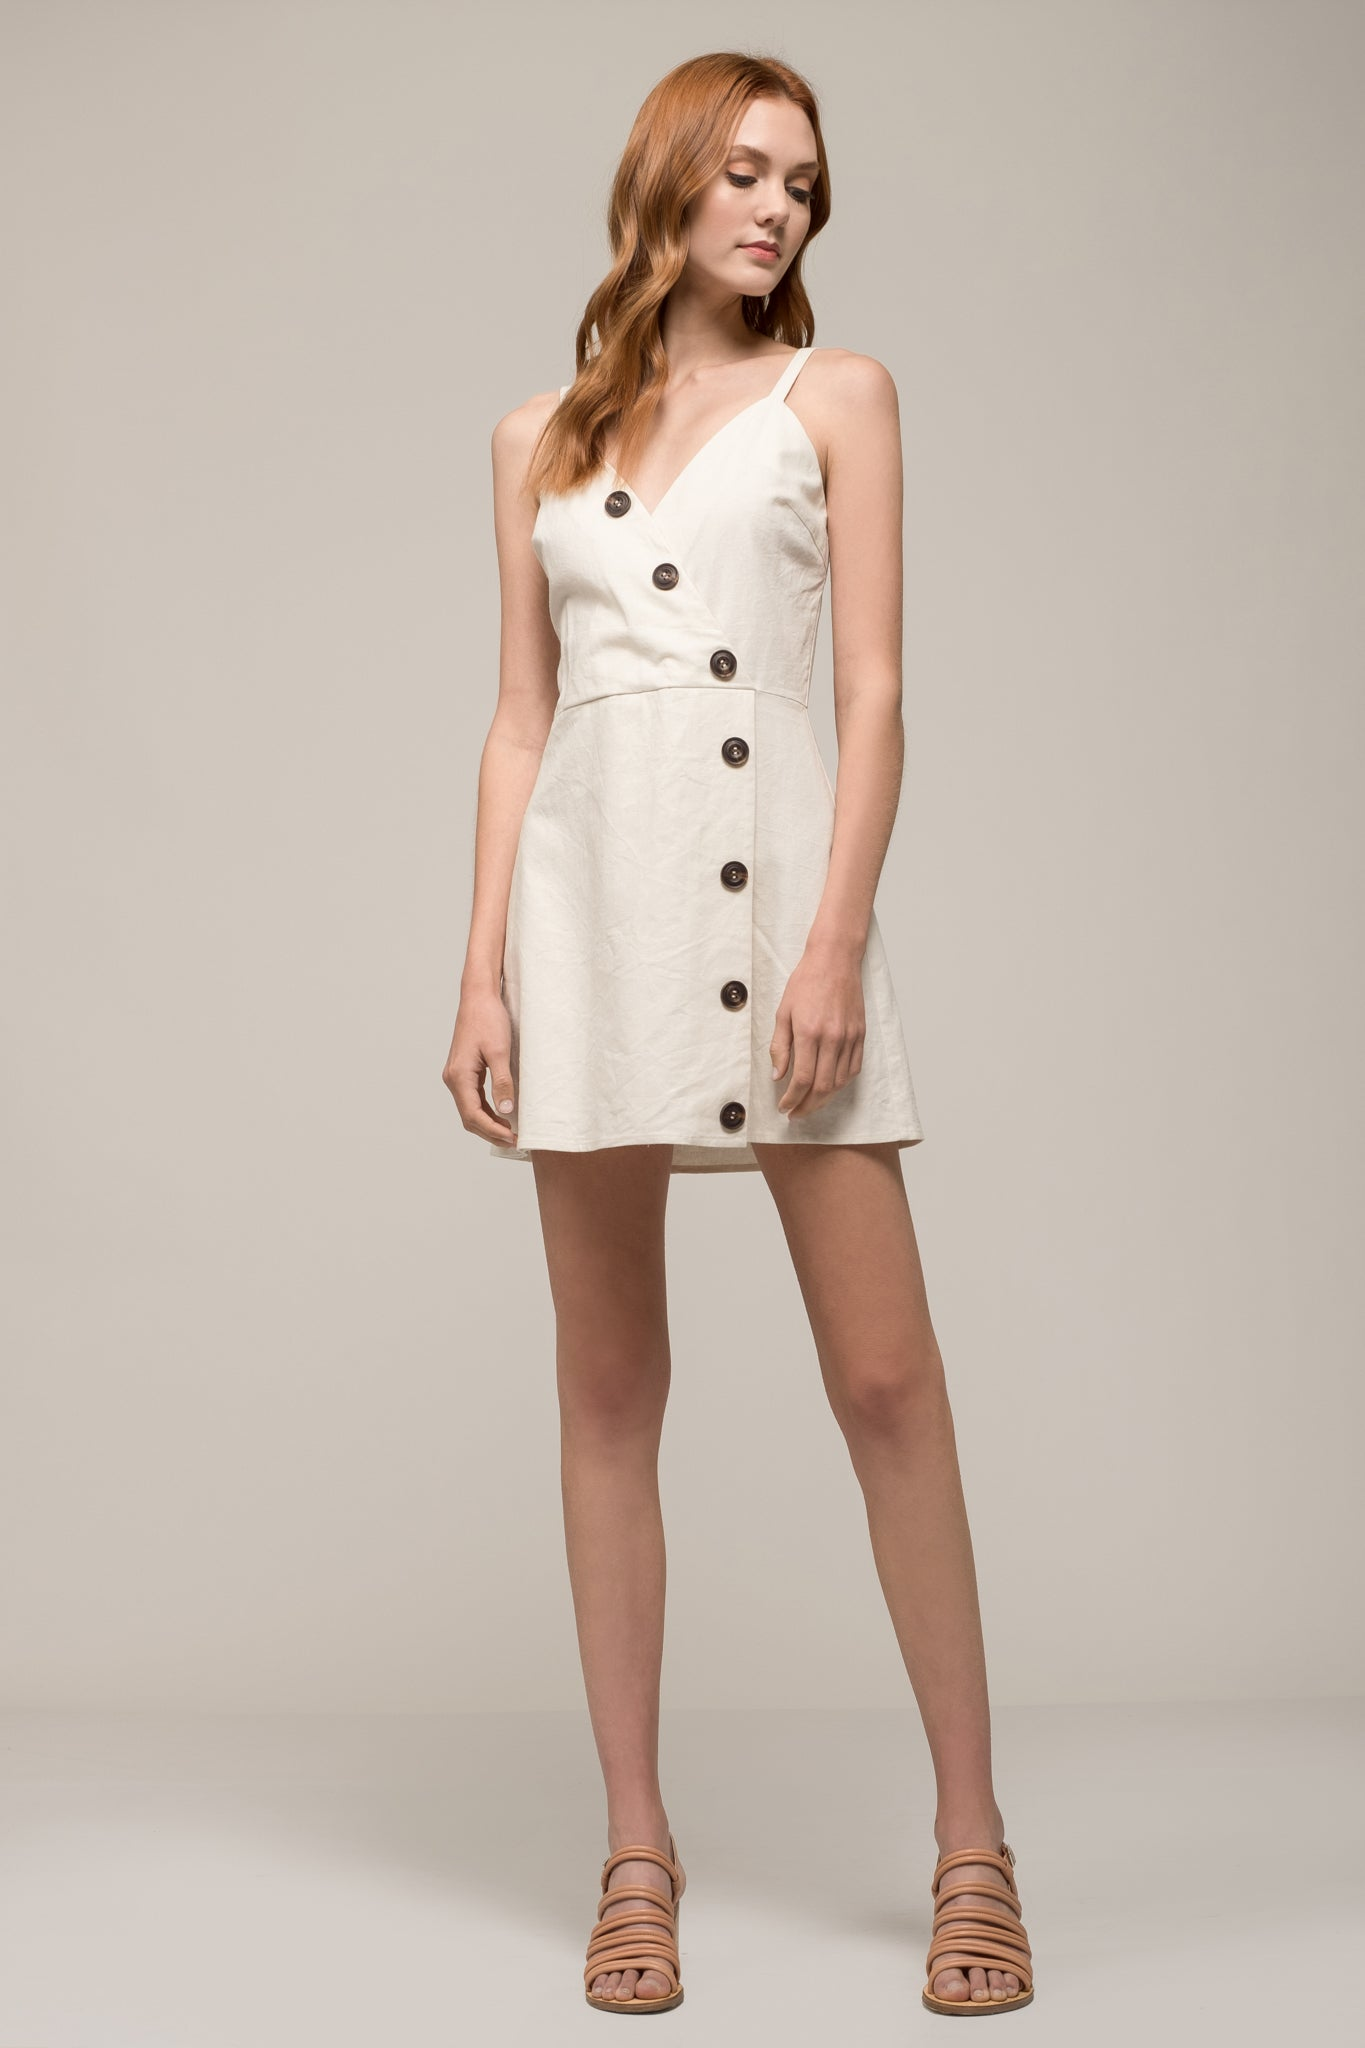 SLEEVELESS V NECK DRESS WITH BUTTON DETAIL